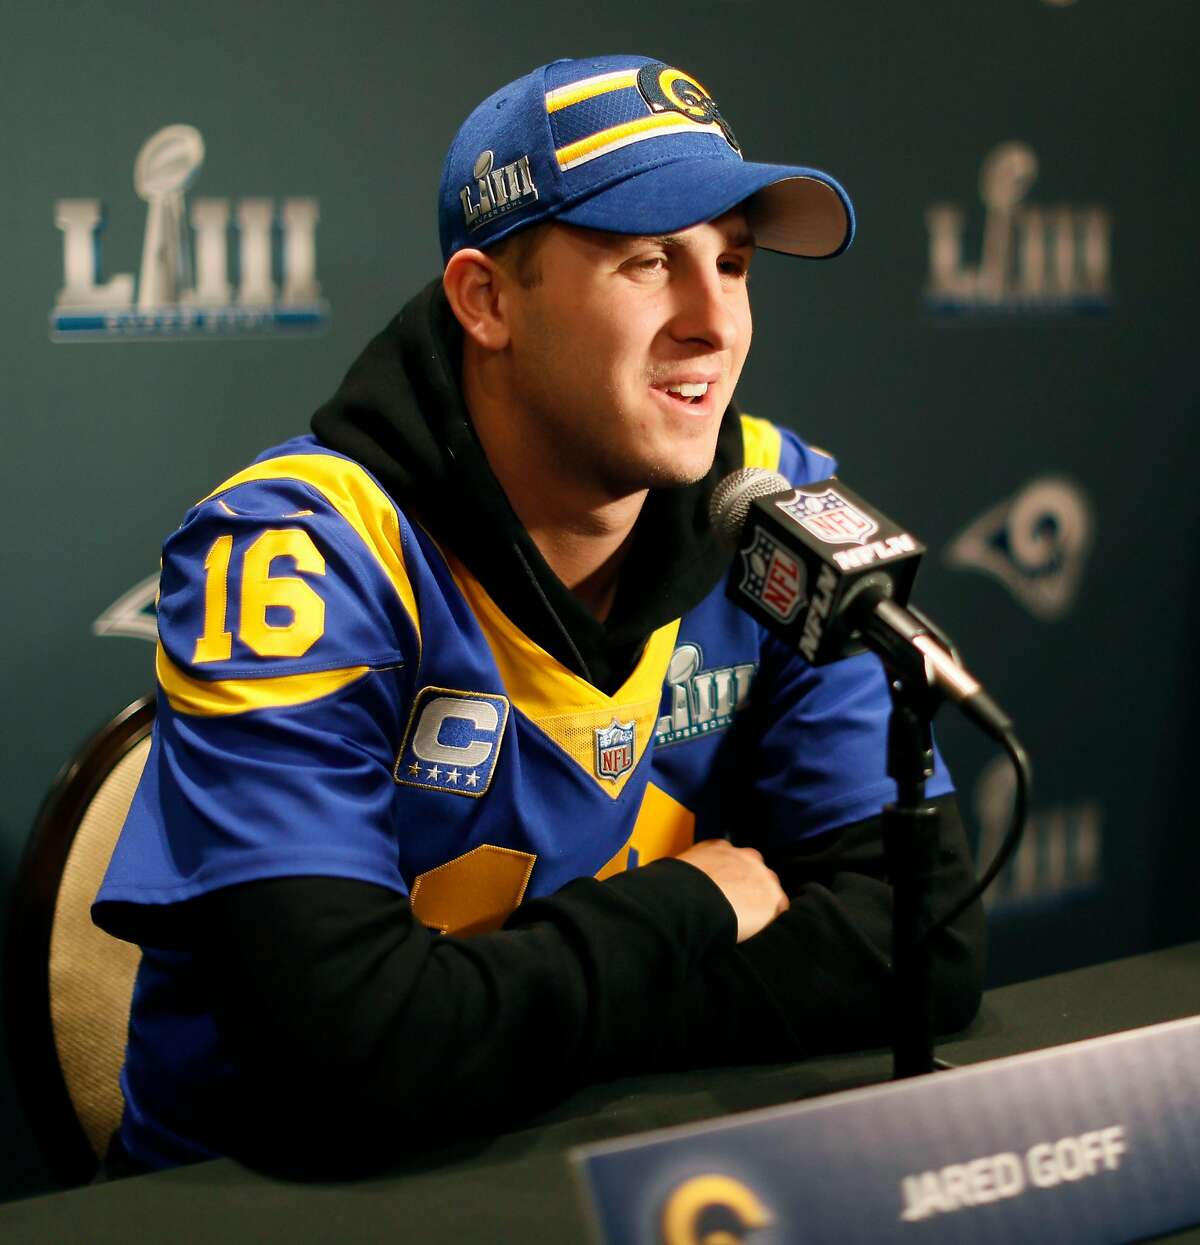 Los Angeles Rams quarterback Jared Goff (16) answers questions from the media during the final Los Angeles Rams media interviews before the Super Bowl on Jan. 31, 2019 in Atlanta, Ga. (Bob Andres/Atlanta Journal-Constitution/TNS)